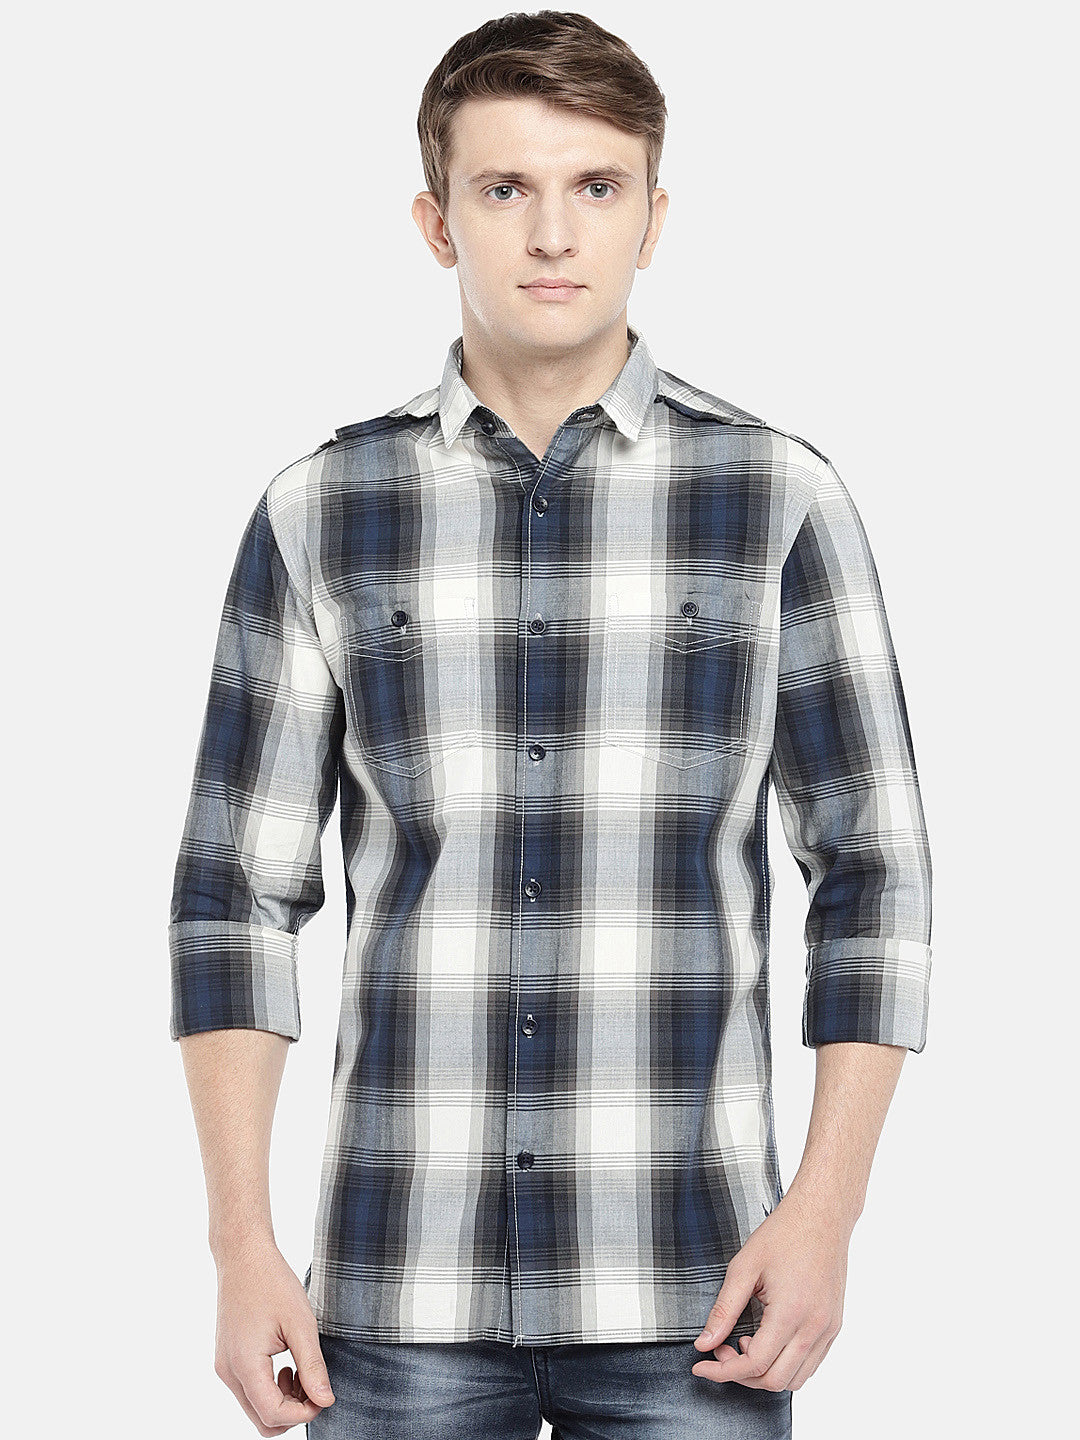 Grey & Navy Blue Regular Fit Checked Casual Shirt-1